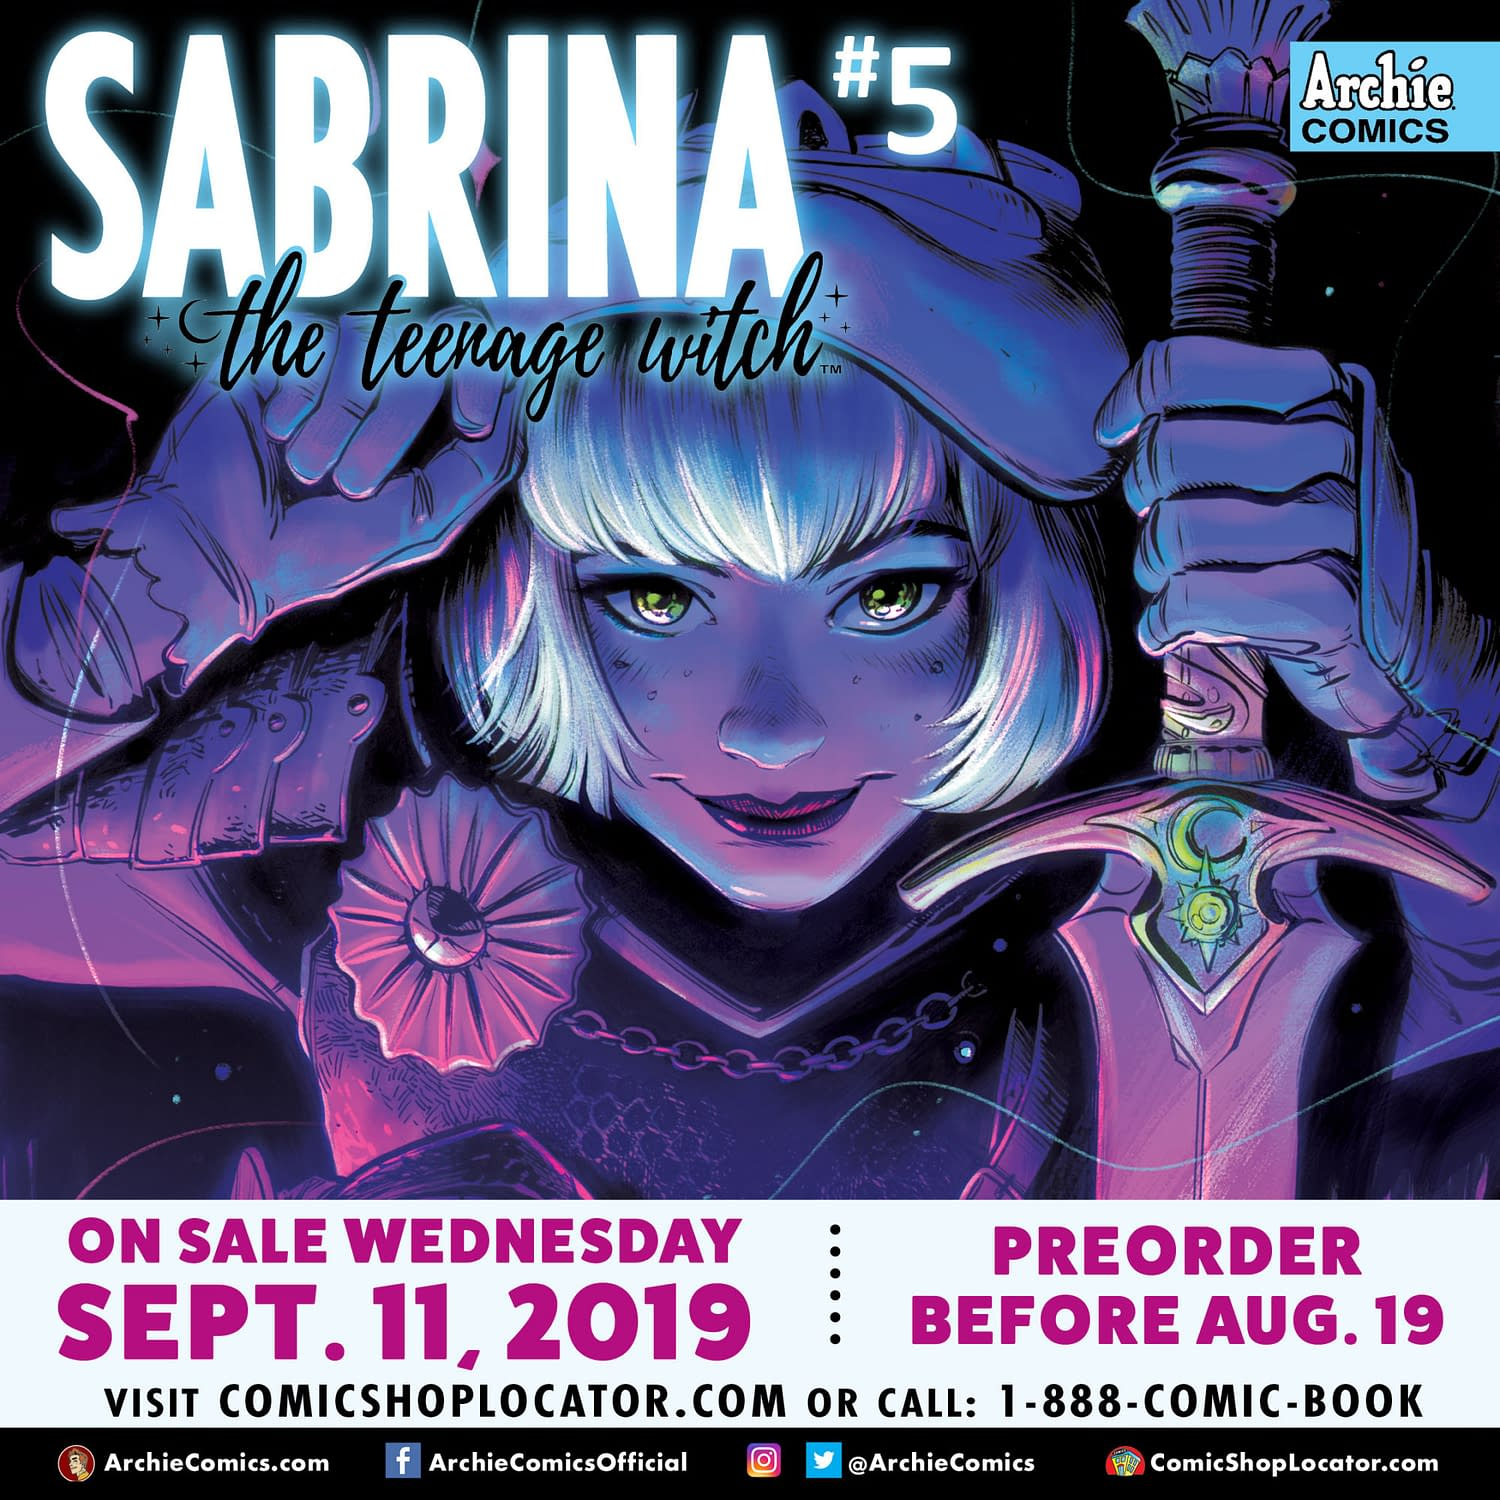 Will Moose Mason Support the Green New Deal? Previews of Archie: Married Life 10th Anniversary #2 and Sabrina #5